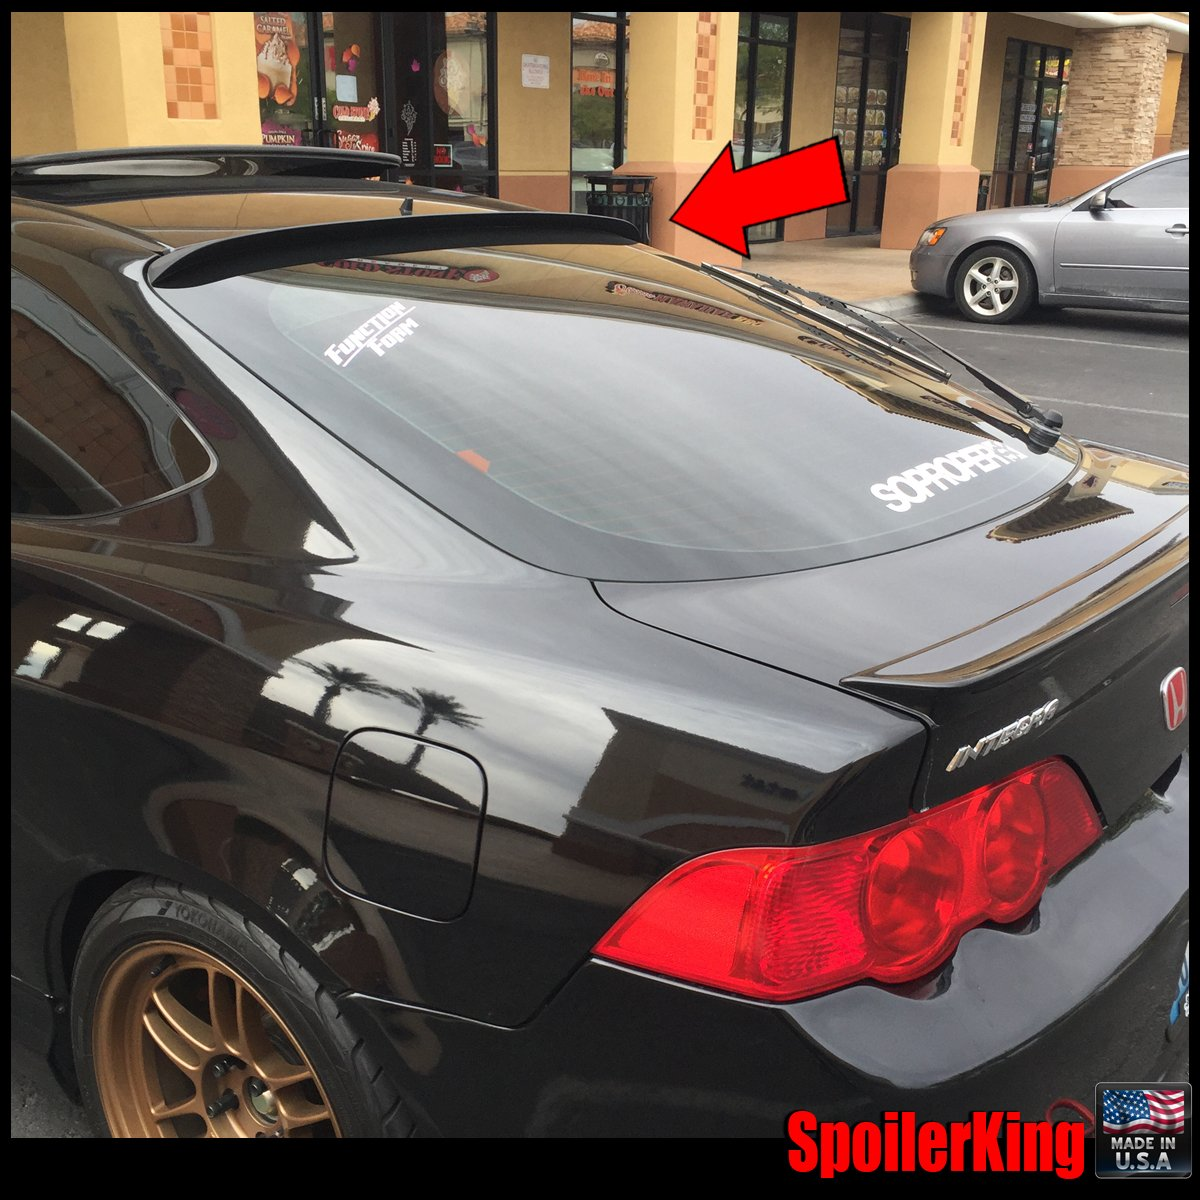 Spoiler King Roof Spoiler 284R compatible with Acura RSX 2002-2006 ...